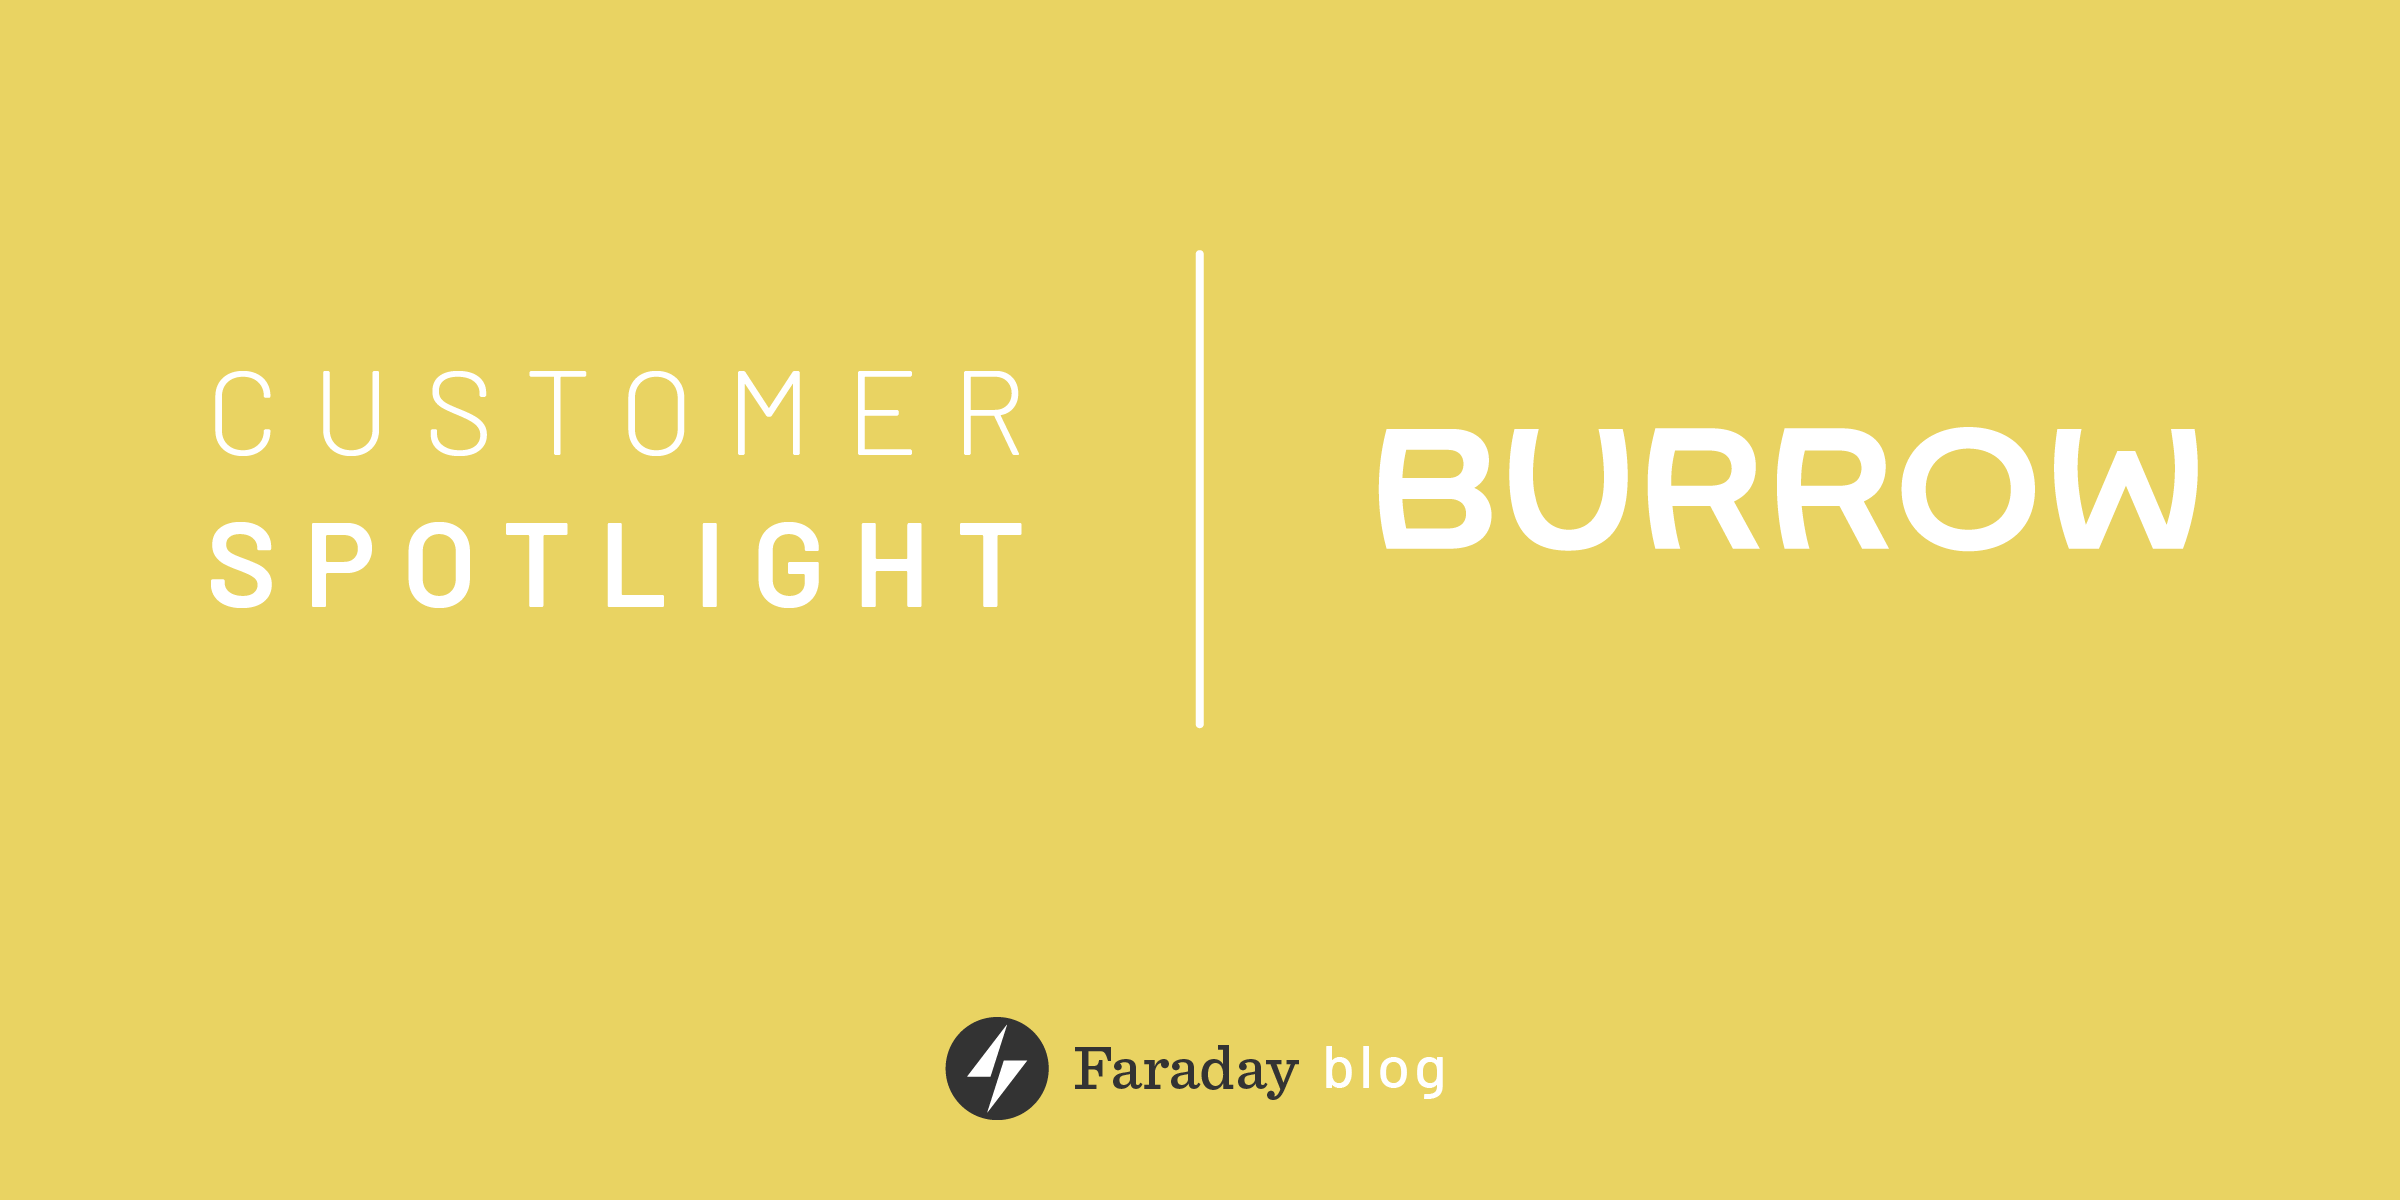 Customer Spotlight: How Burrow used data science to reinvent the furniture industry